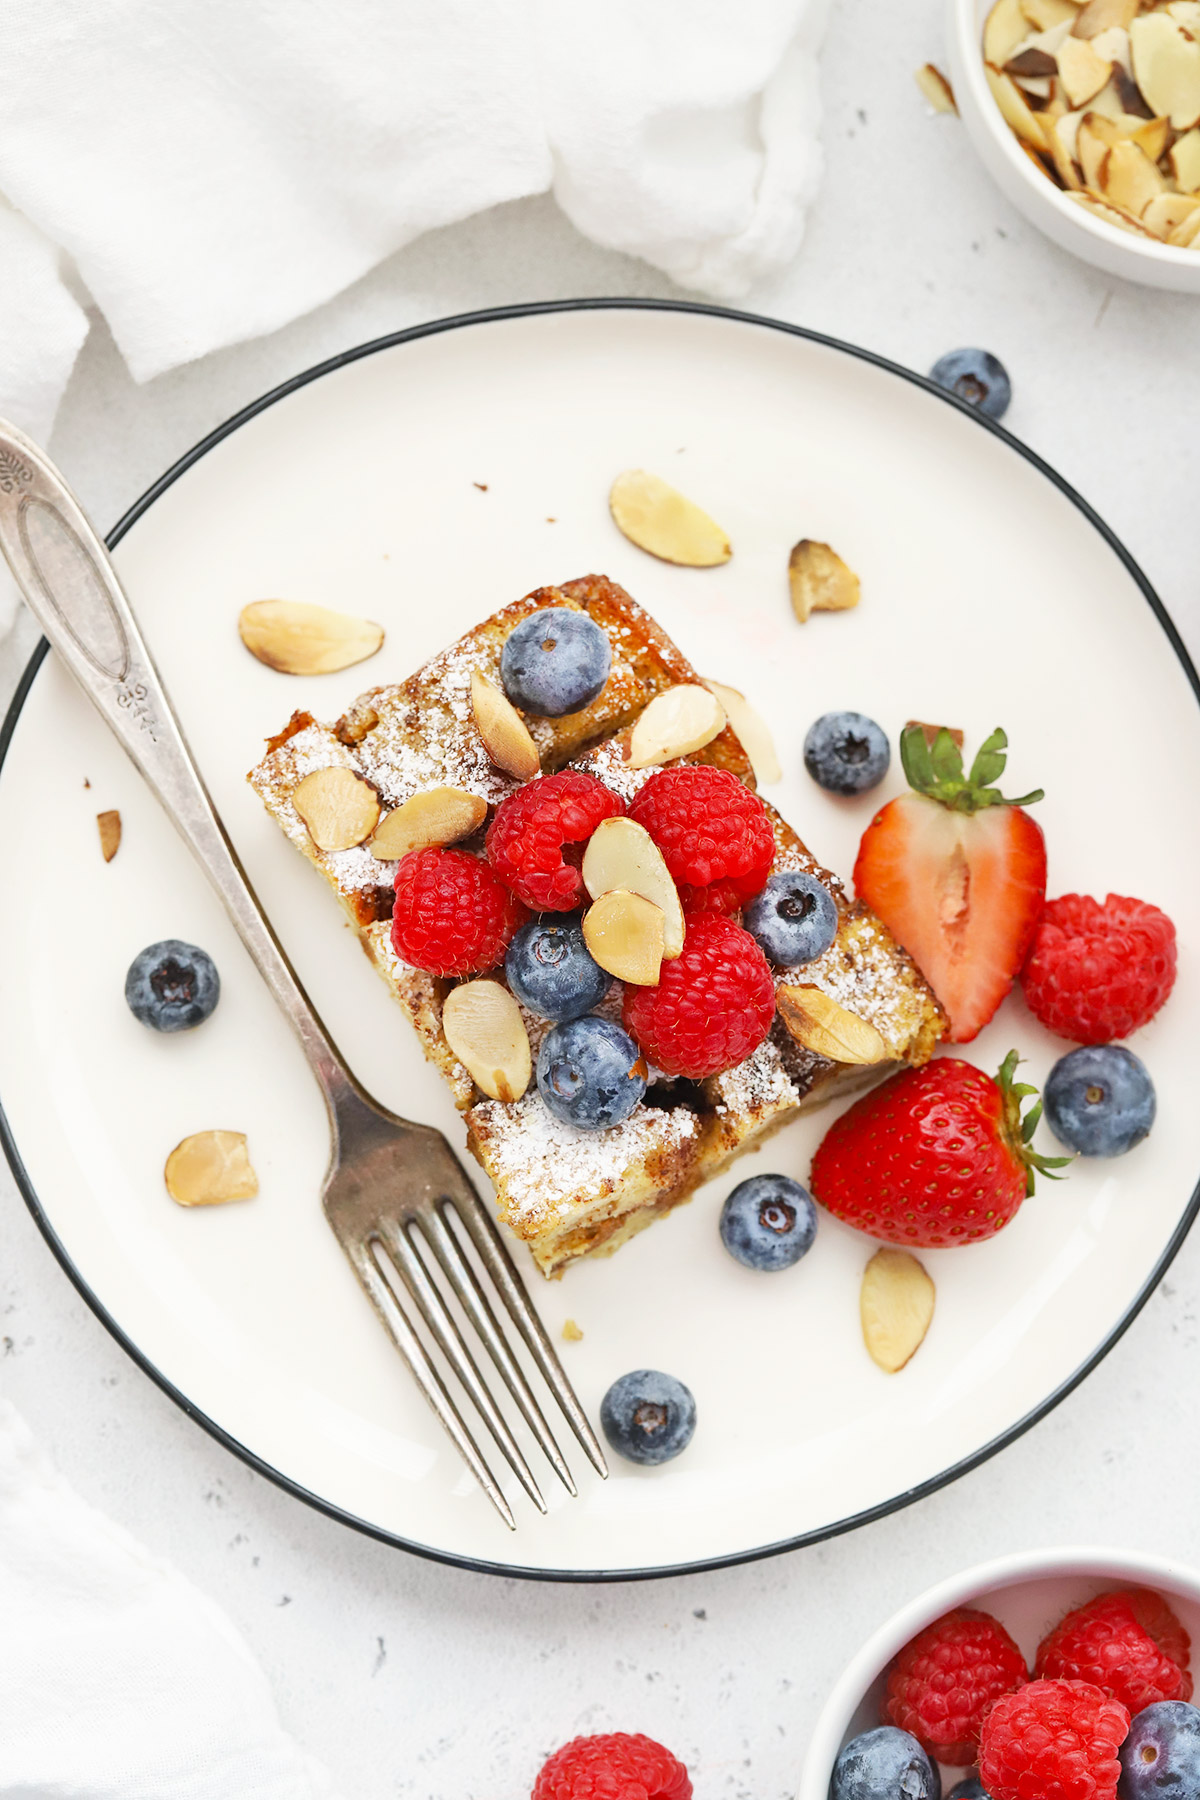 Overhead view of a slice of gluten-free french toast casserole on a white plate topped with berries and almonds